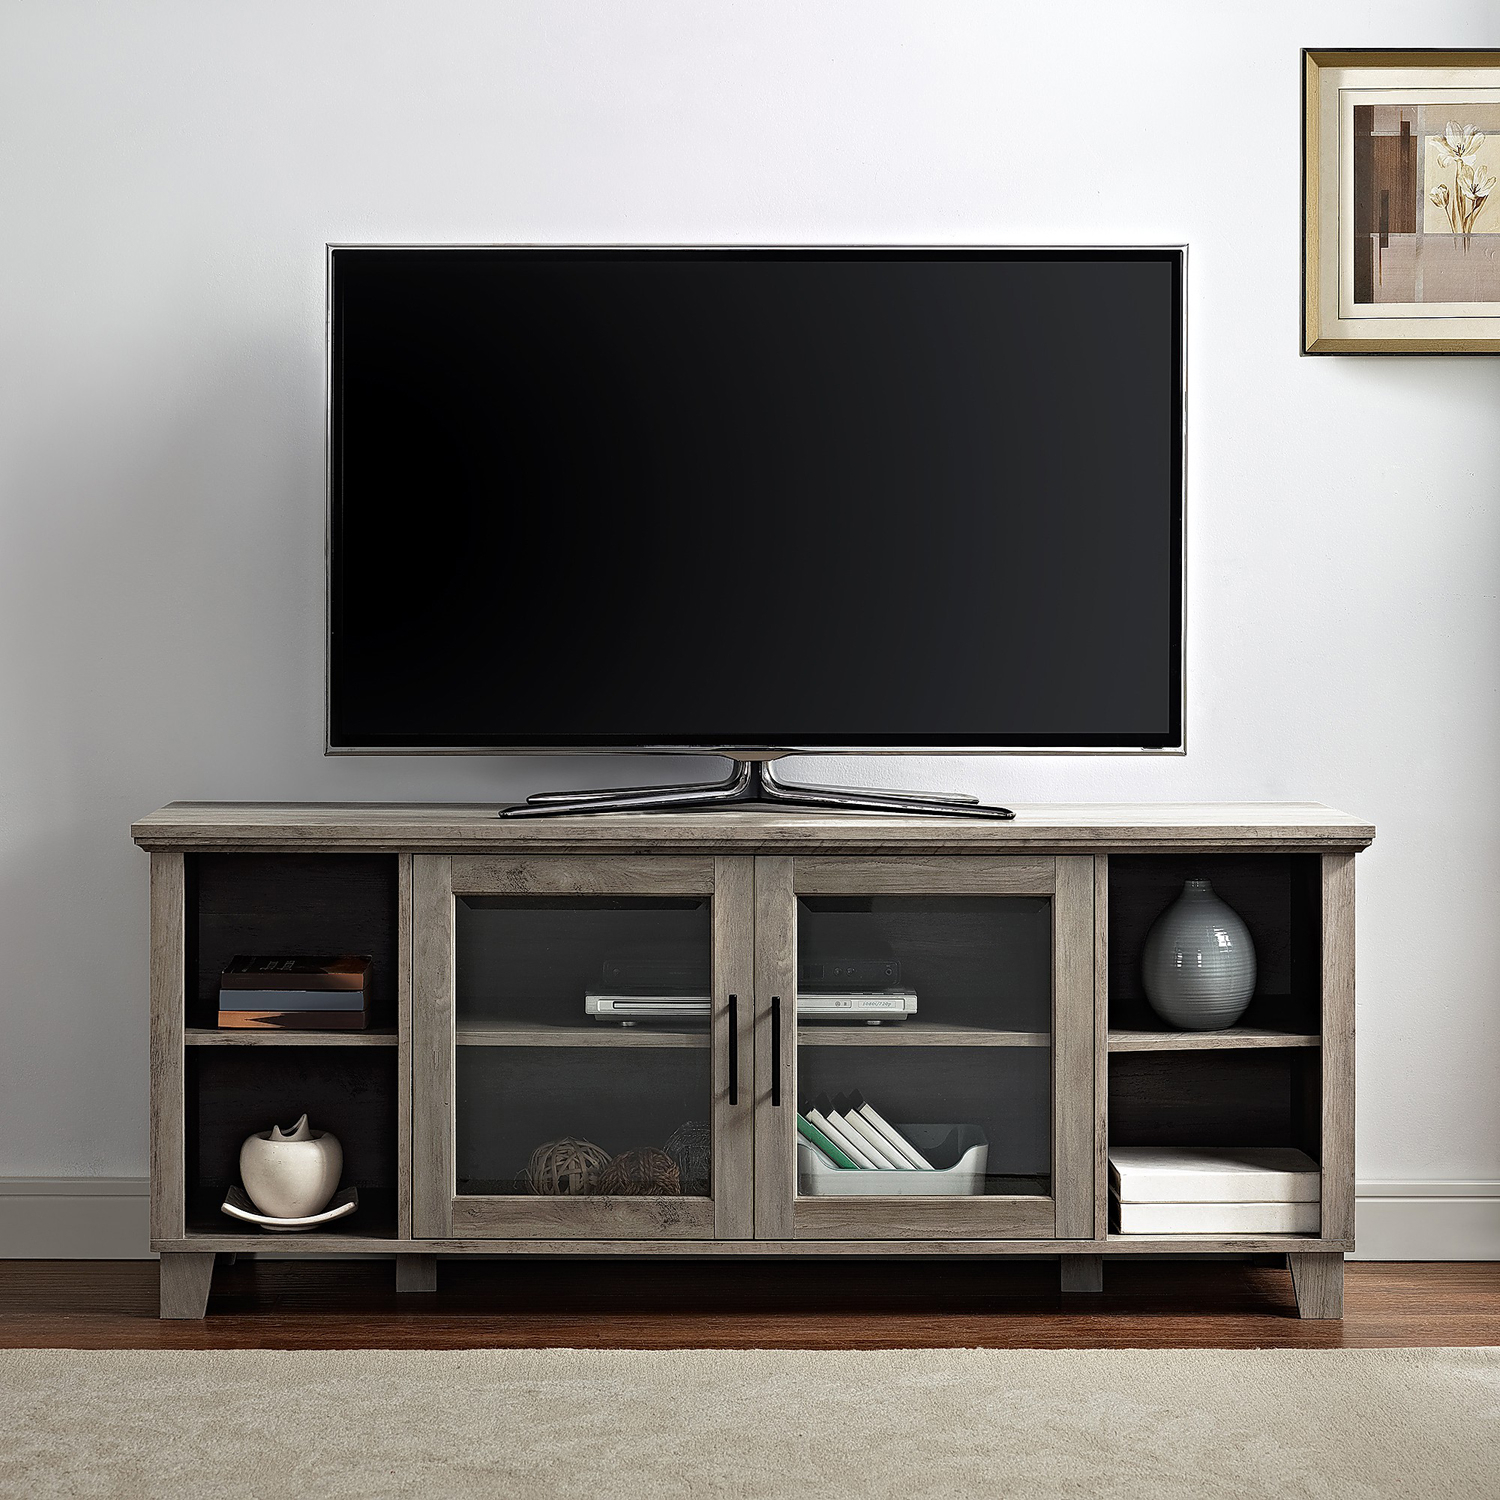 Traditional Tv Stand With Glass Doors – Pier1 For Tv Cabinets With Glass Doors (View 2 of 15)